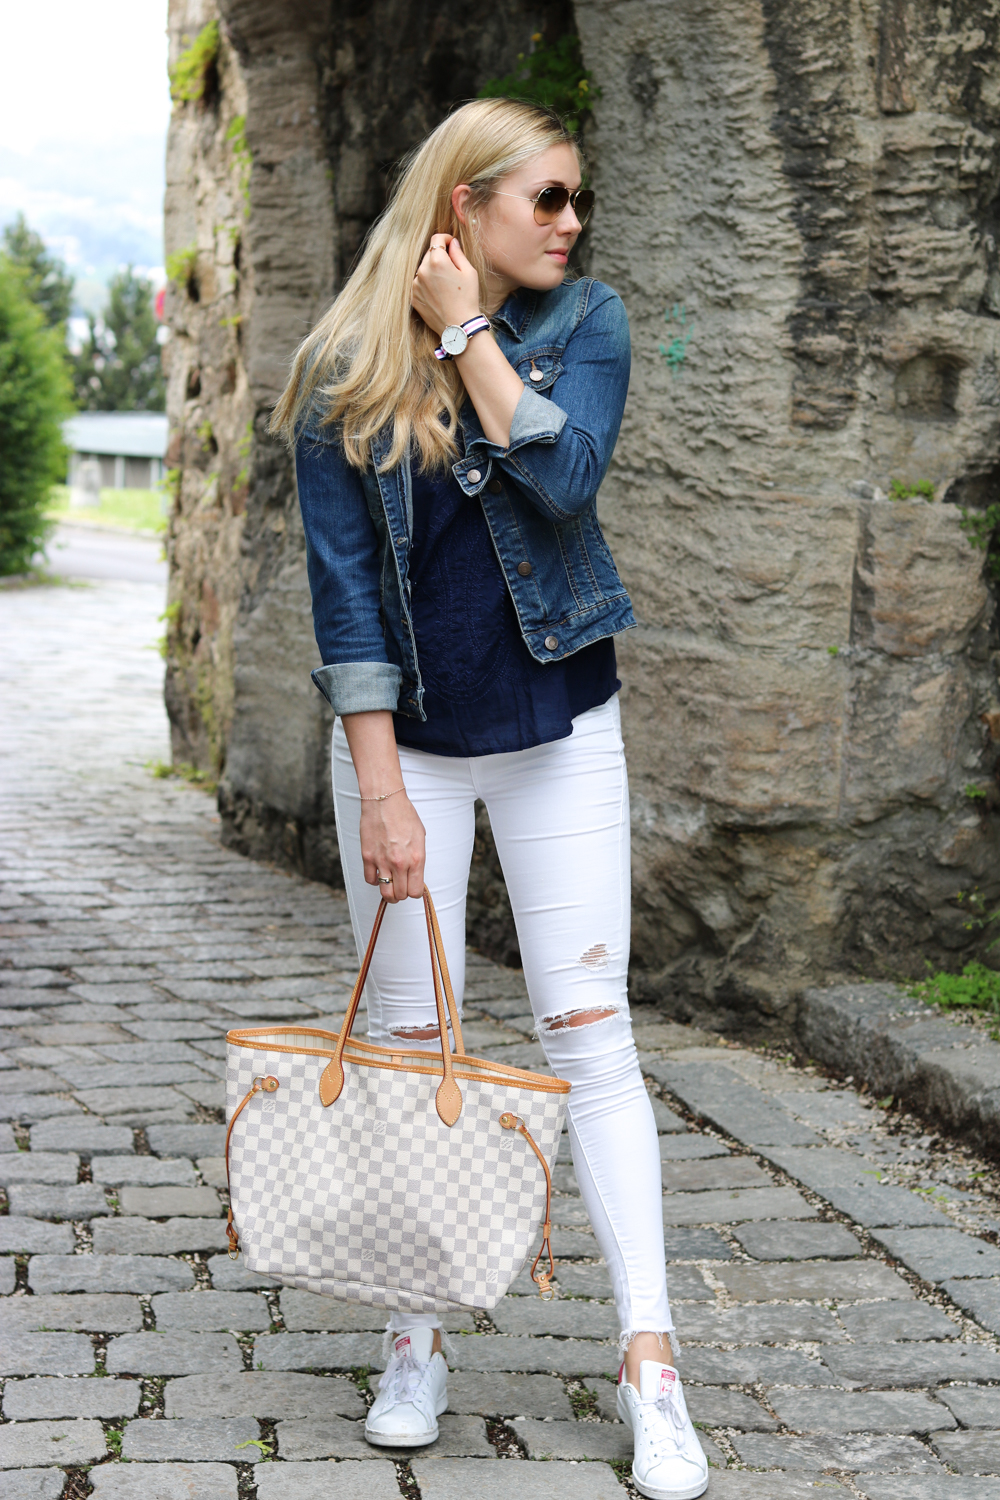 Bits and Bobs by Eva, Blog, Austrian Blog, Österreichische Blog, lovedailydose, your daily treat, fashion, beauty, food, interior, fitness, new, bitsandbobsbyeva.com, travel, spring, Mai, Frühling, Outfit Schlossberg, Linz Schlossberg, Schlossmuseum, Linz Blogger, Daniel Wellington, Toyshop Leigh Jeans